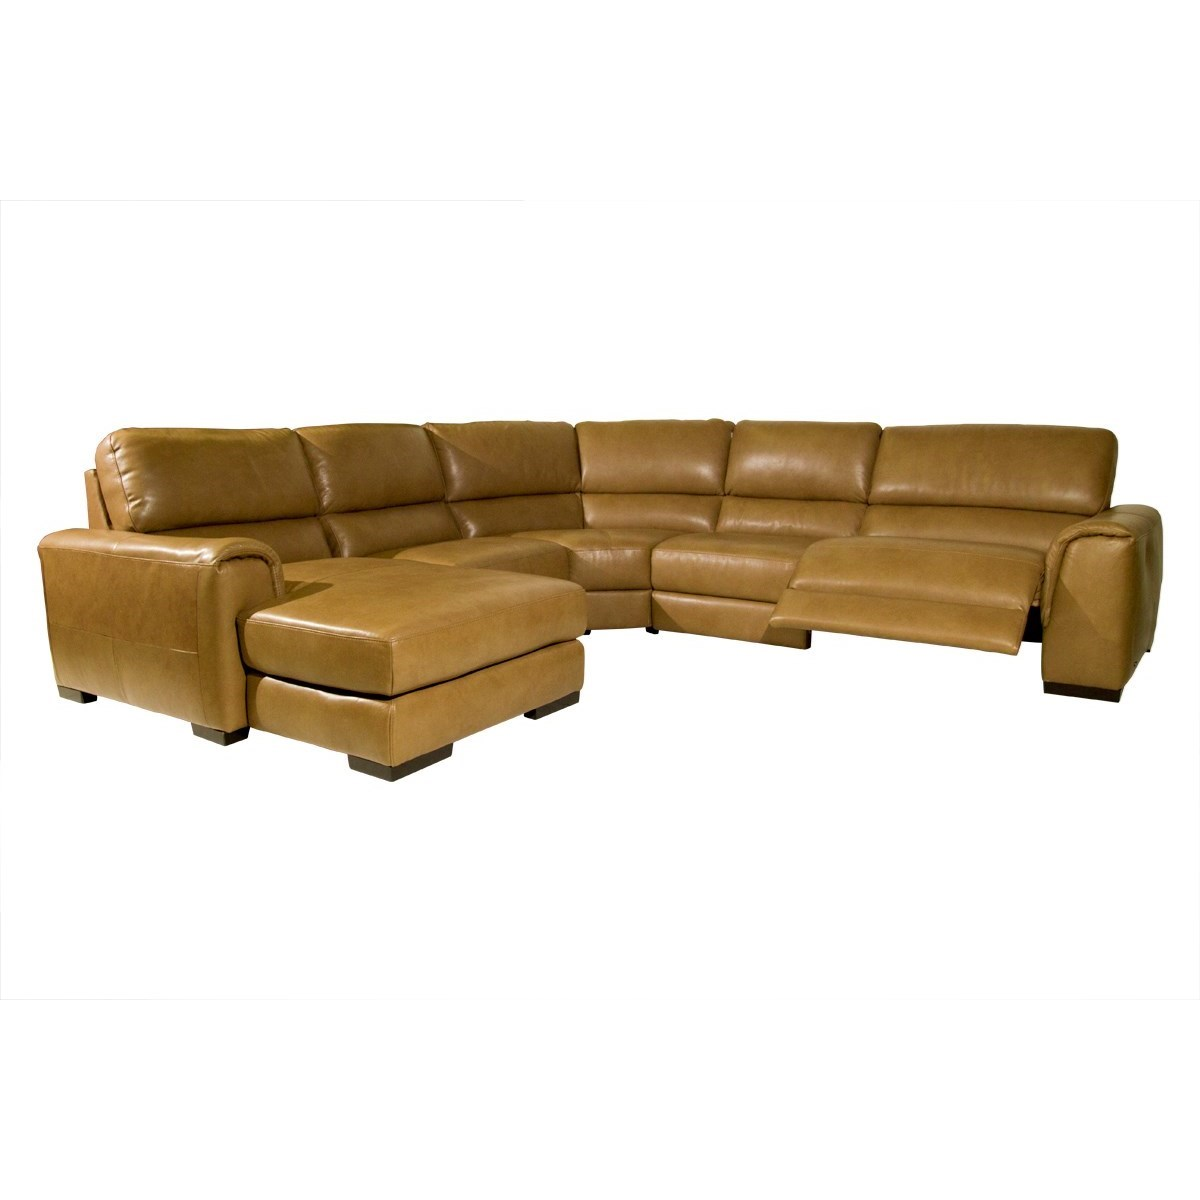 Reclining sectional sofas 100 sofa beds rooms to go for Sectional sofa bed rooms to go